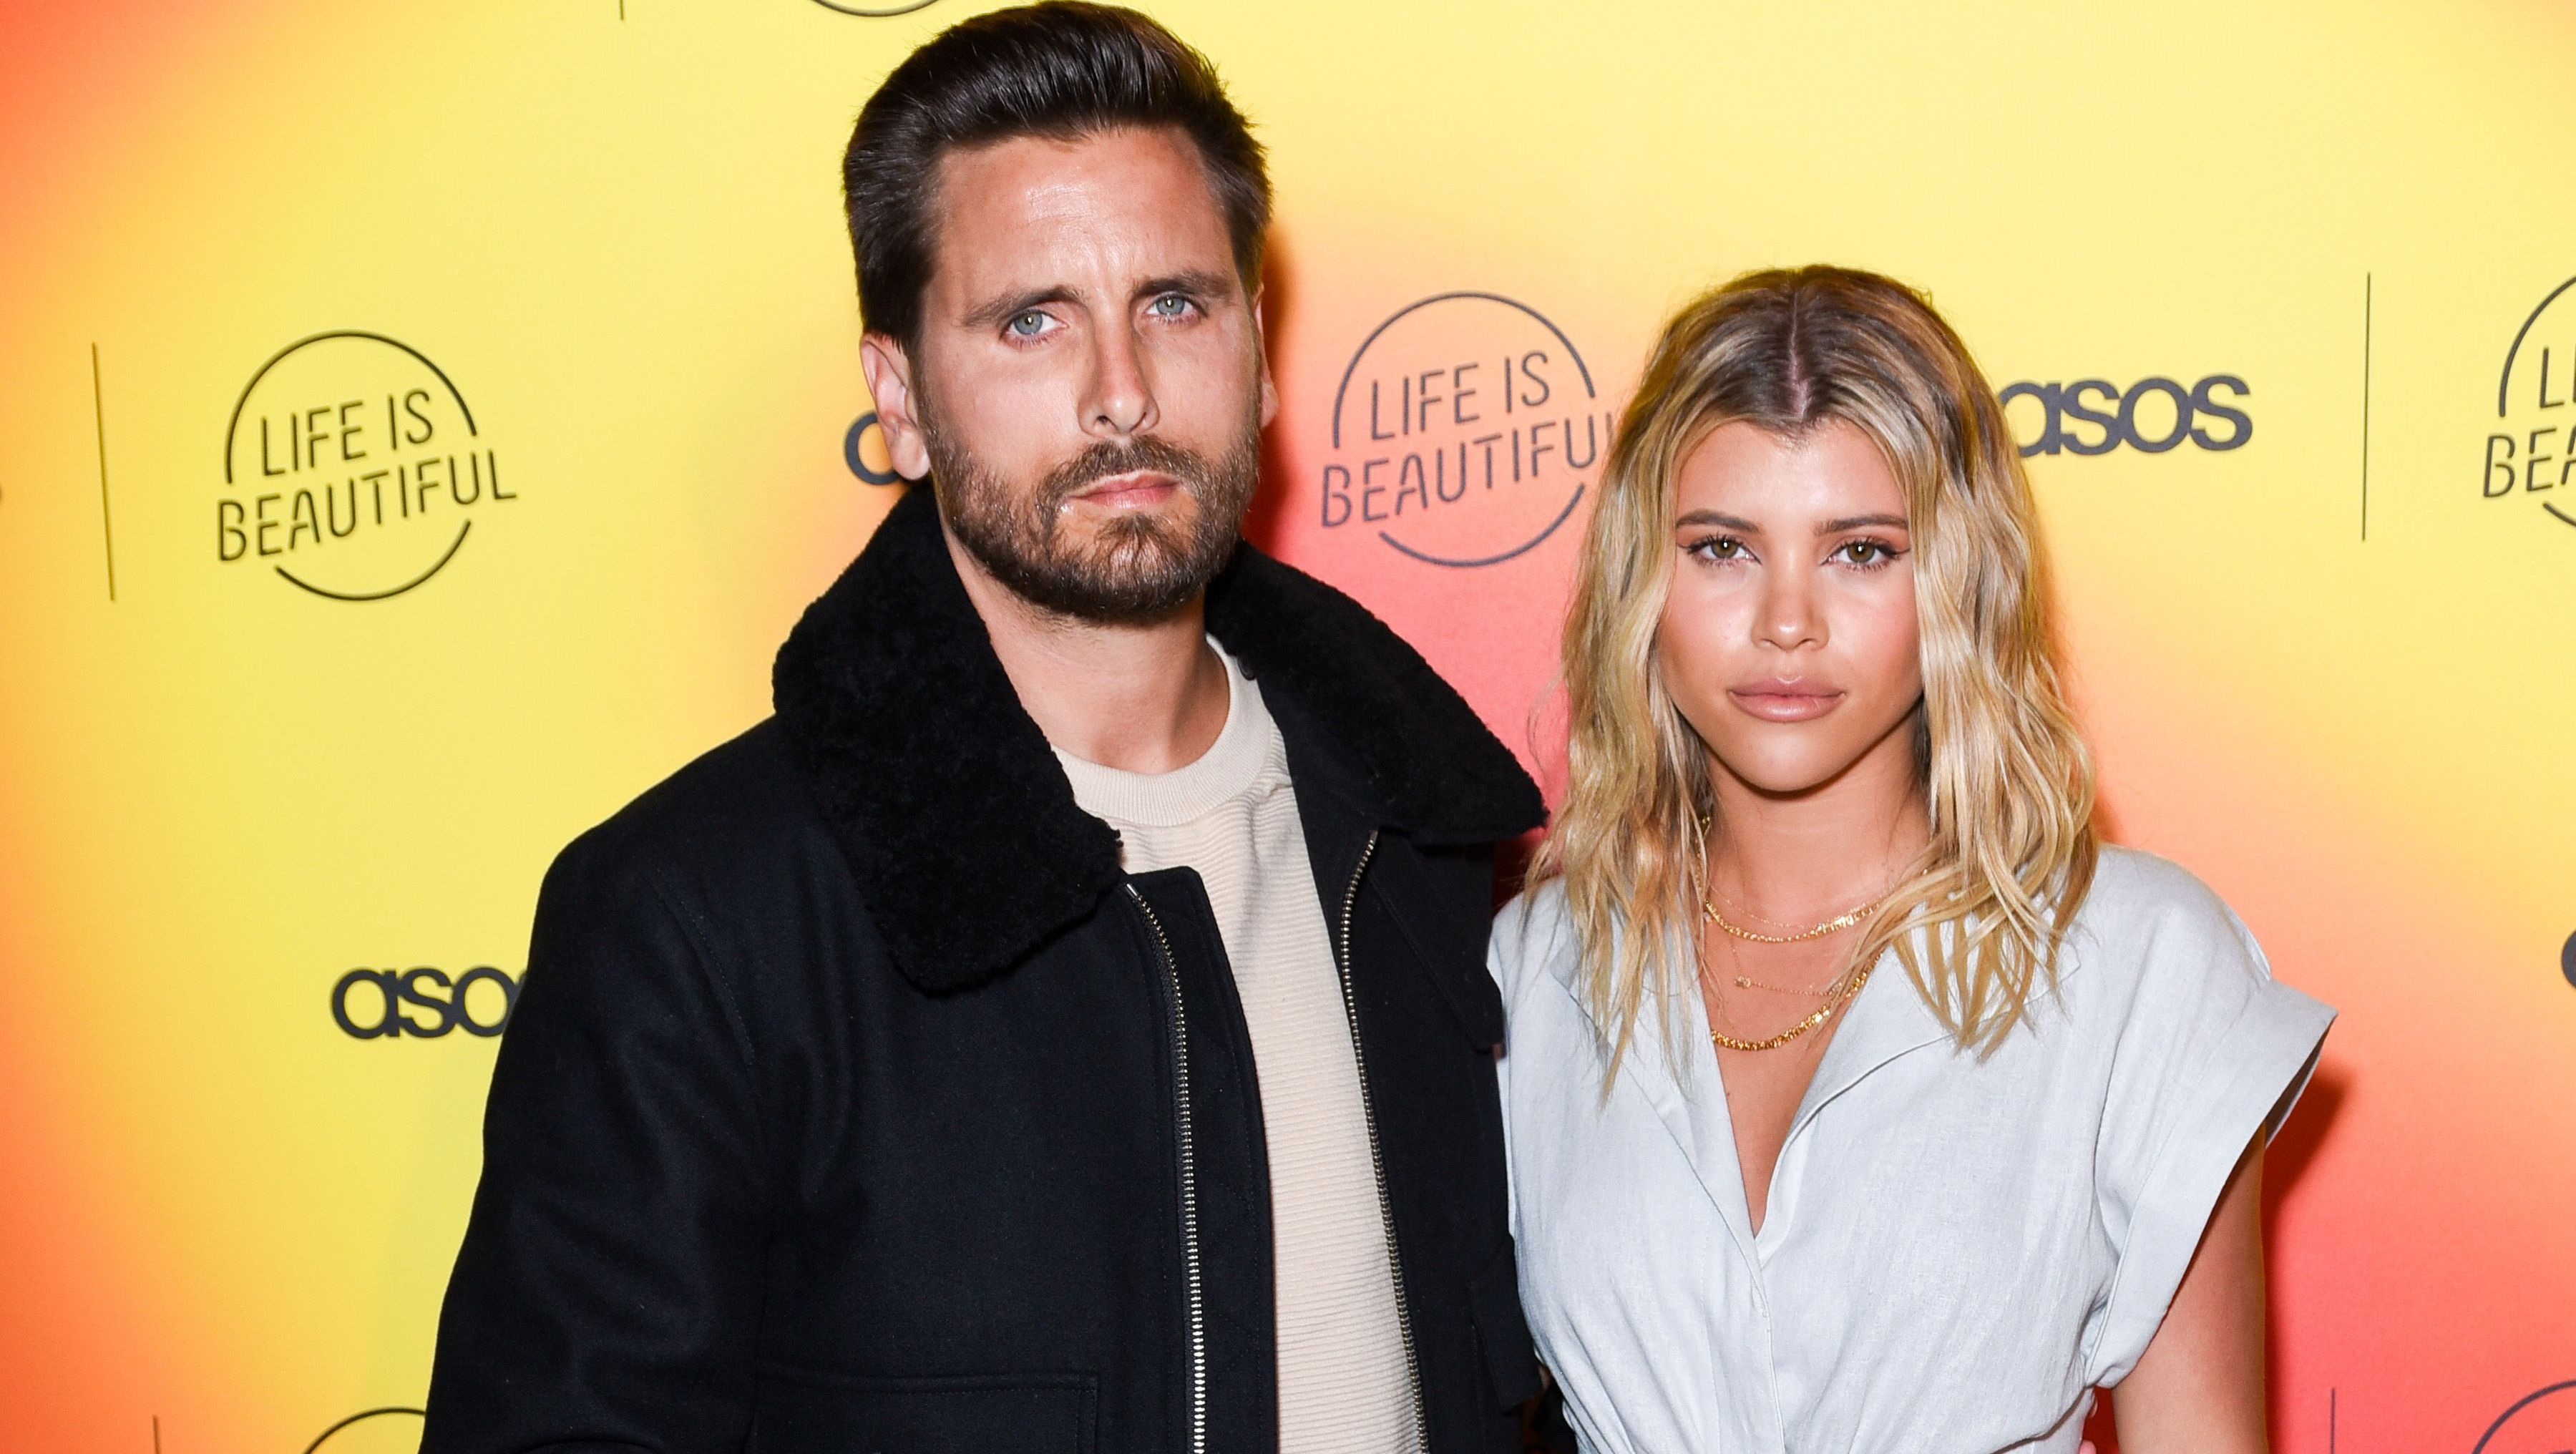 Scott Disick and Sofia Richie attend an event hosted by Asos.